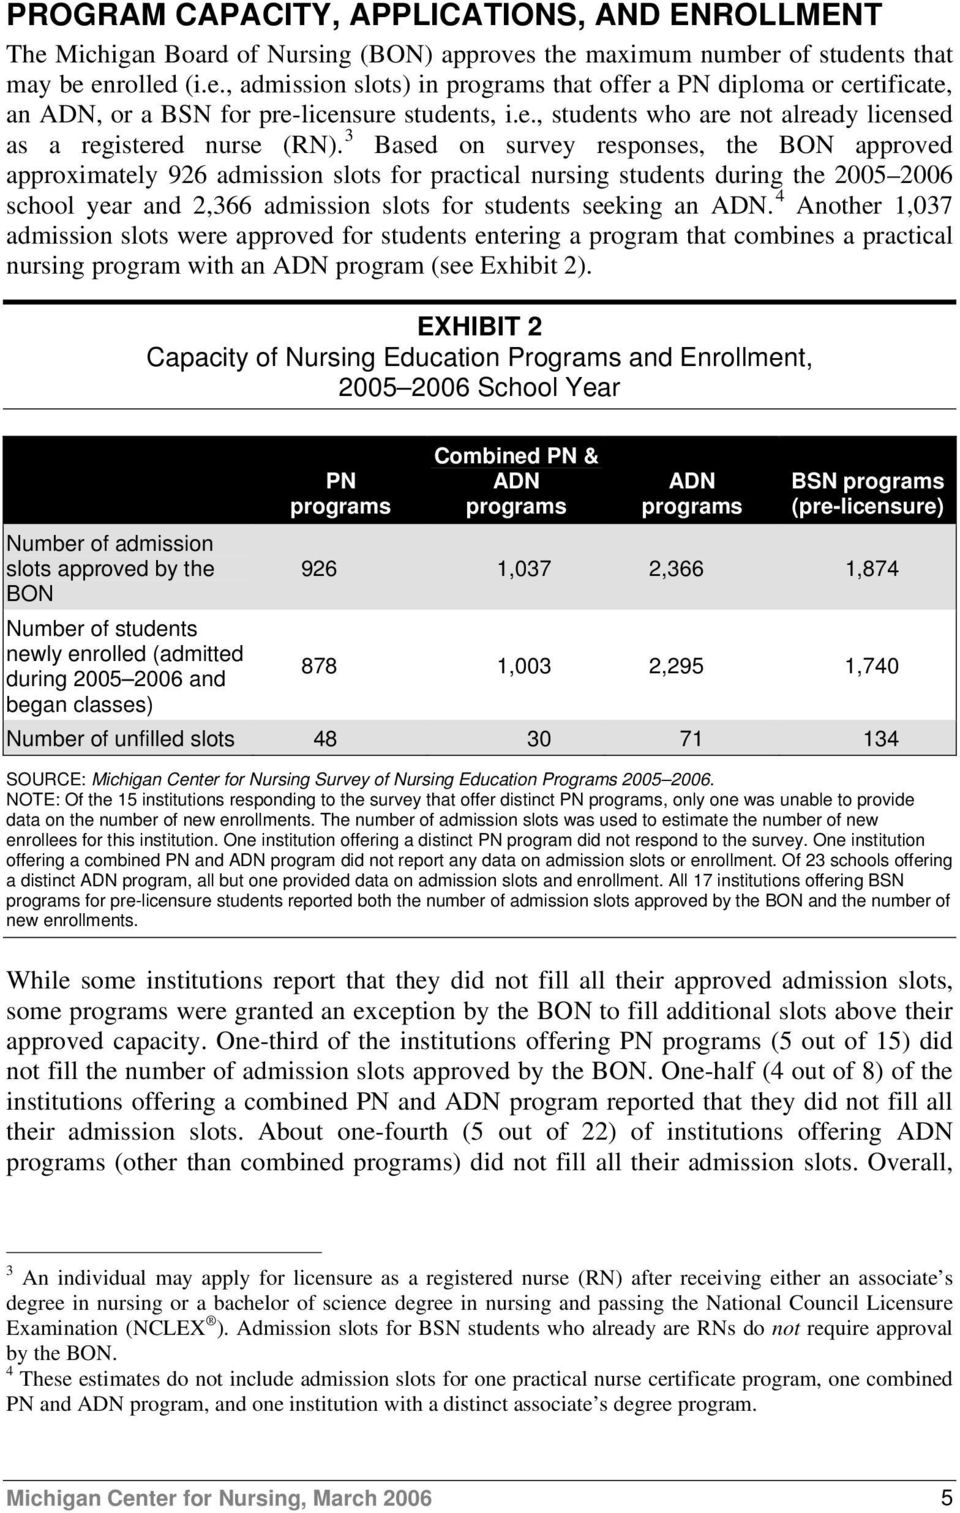 3 Based on survey responses, the BON approved approximately 926 admission slots for practical nursing during the 2005 2006 school year and 2,366 admission slots for seeking an ADN.